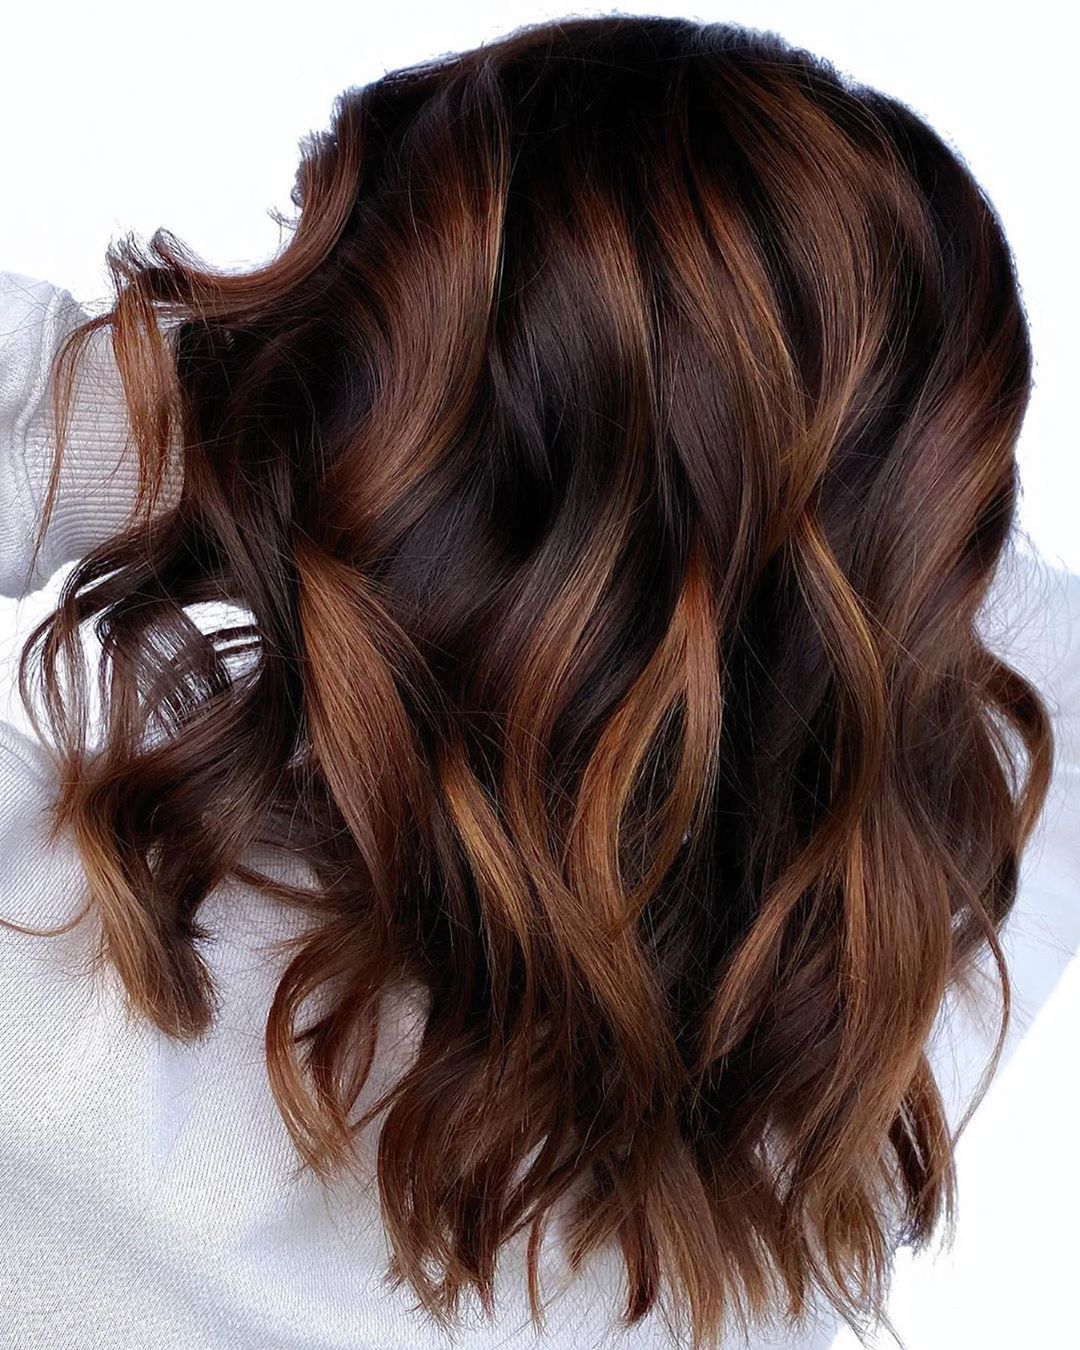 50 Trendy Brown Hair Colors And Brunette Hairstyles For 2021 Hair Adviser